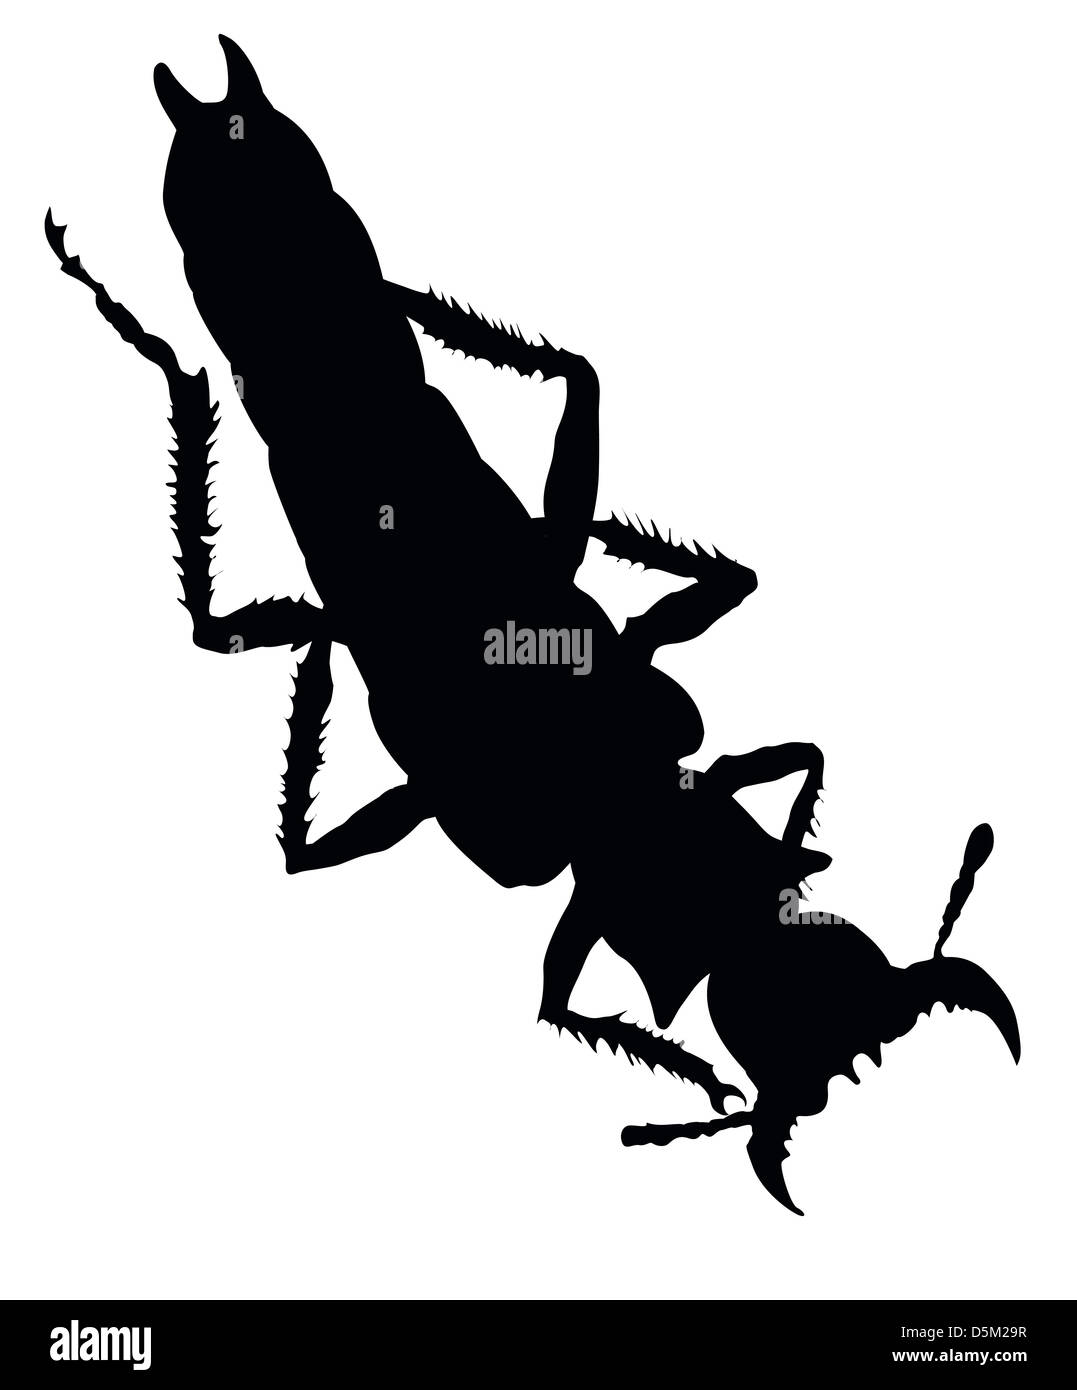 Grasshopper And Ant Stock Photos Amp Grasshopper And Ant